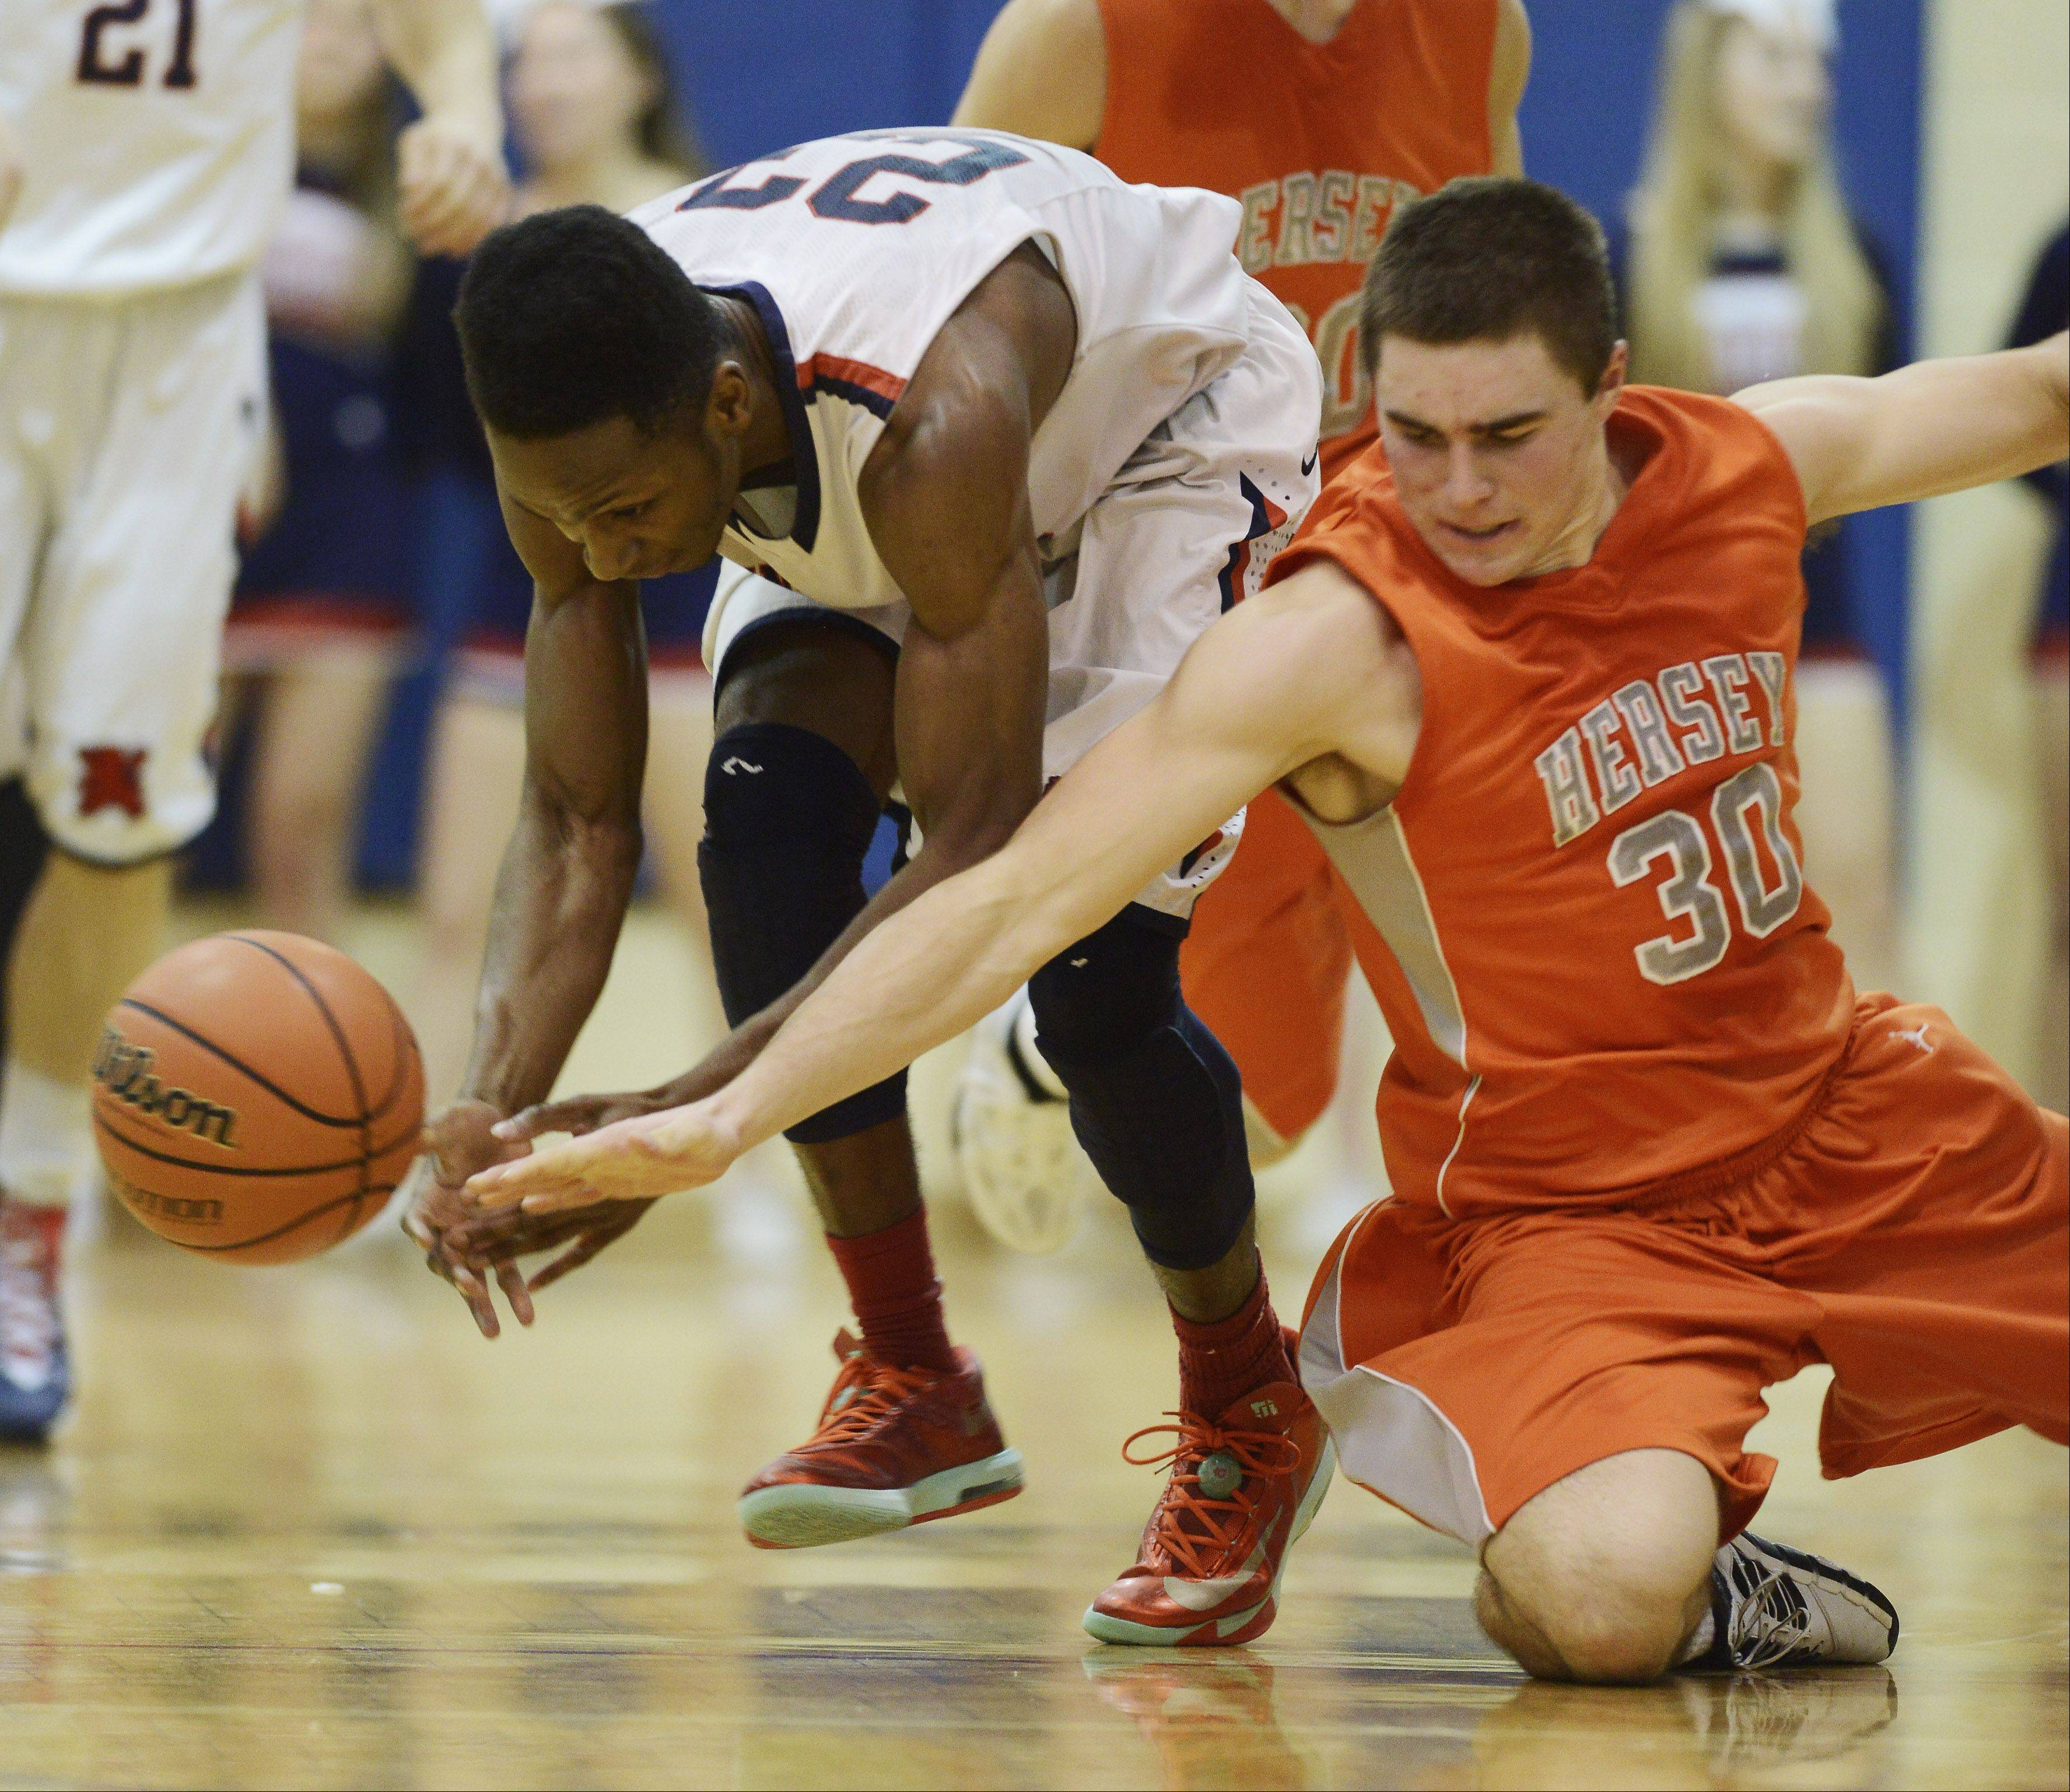 St. Viator's Ore Arogundade, left, tries to tap a loose ball away from Hersey's Grant Burke during Wednesday's game in Cahill Gymnasium.